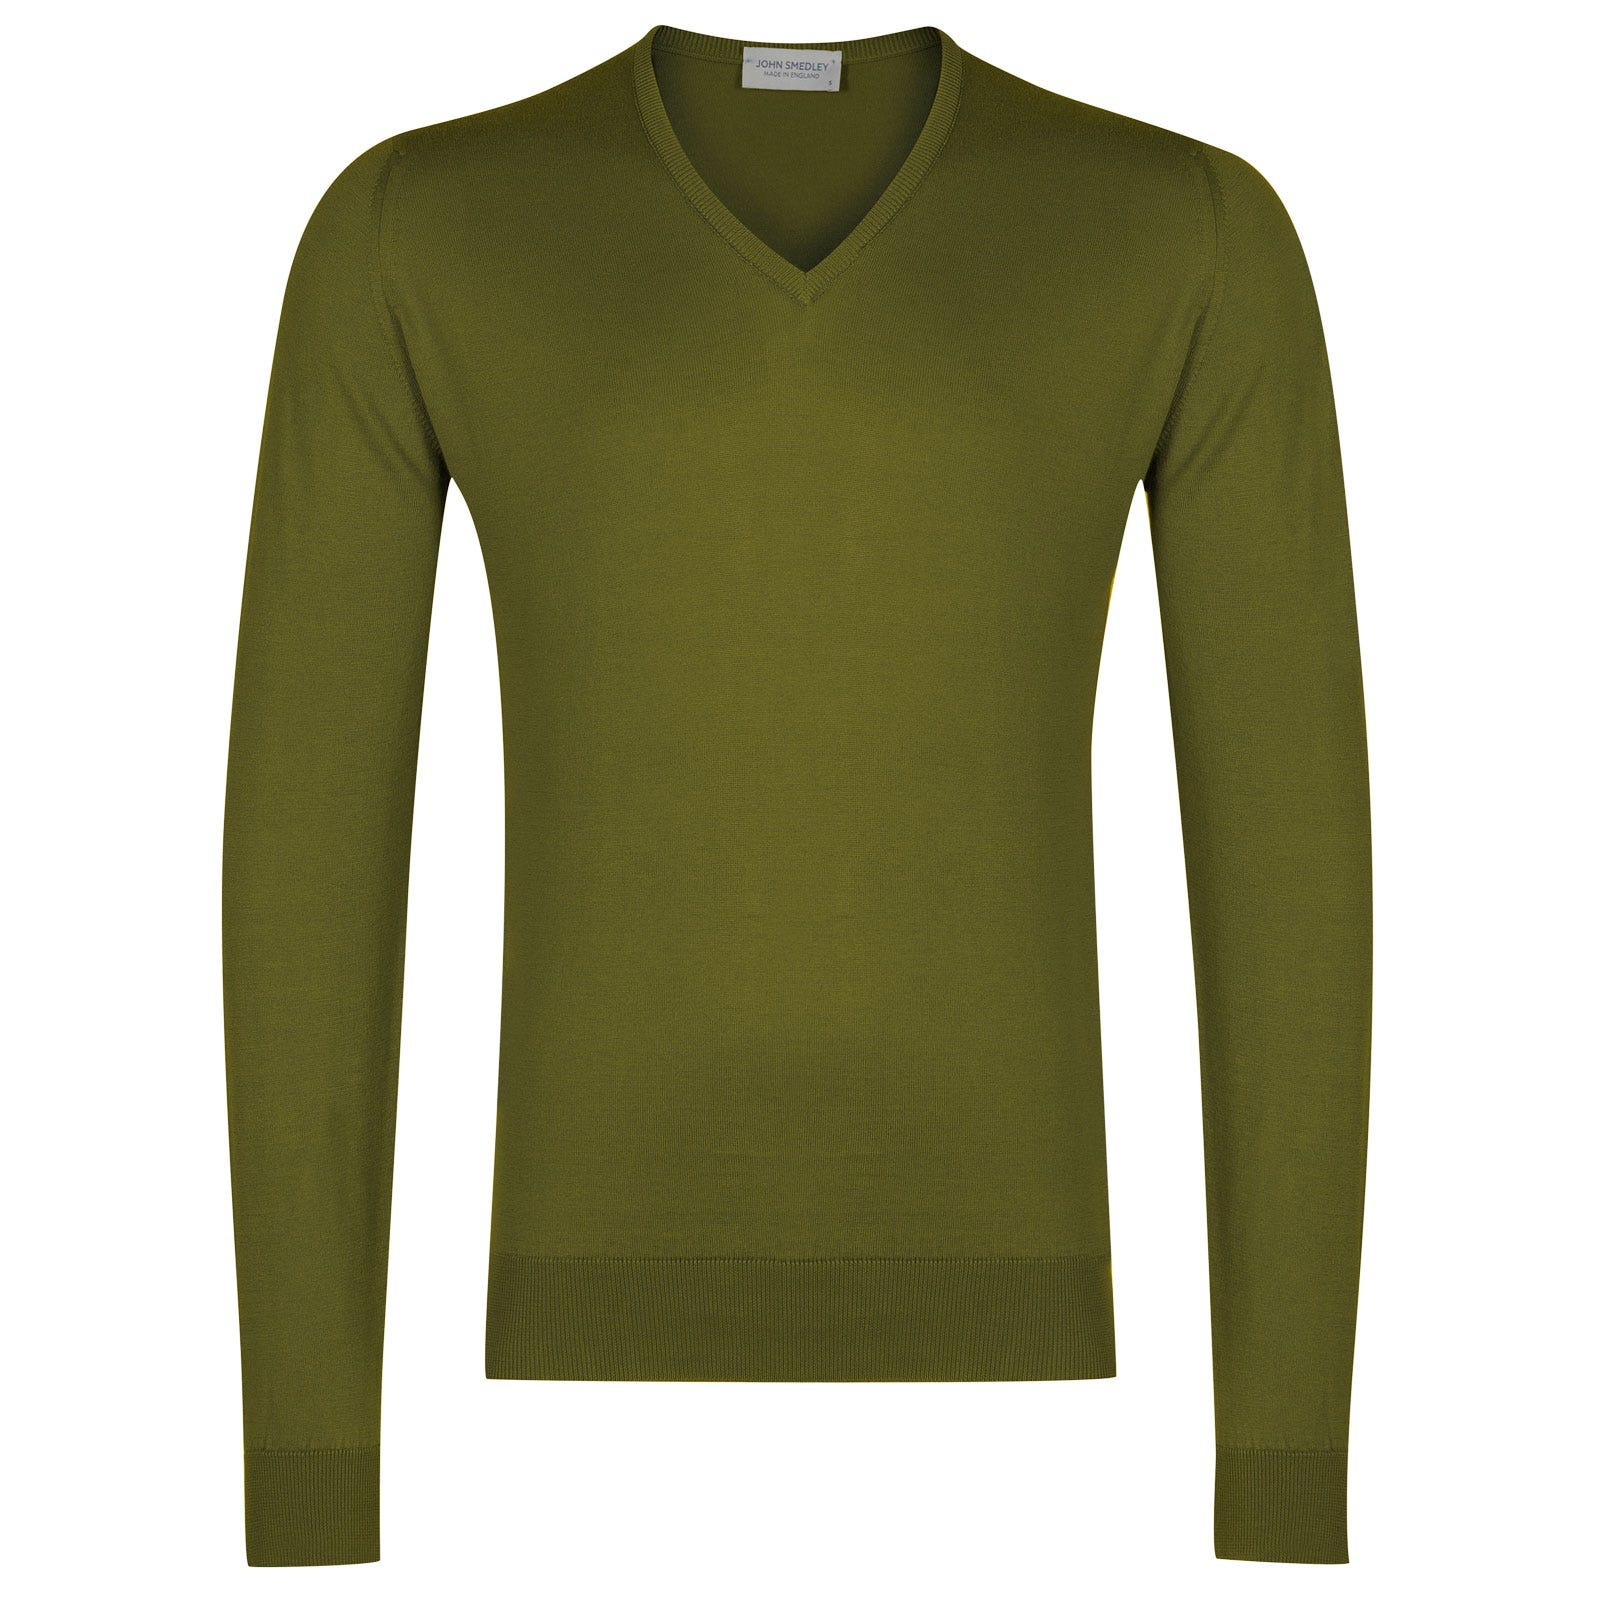 John Smedley Woburn Sea Island Cotton Pullover in Lumsdale Green-XXL